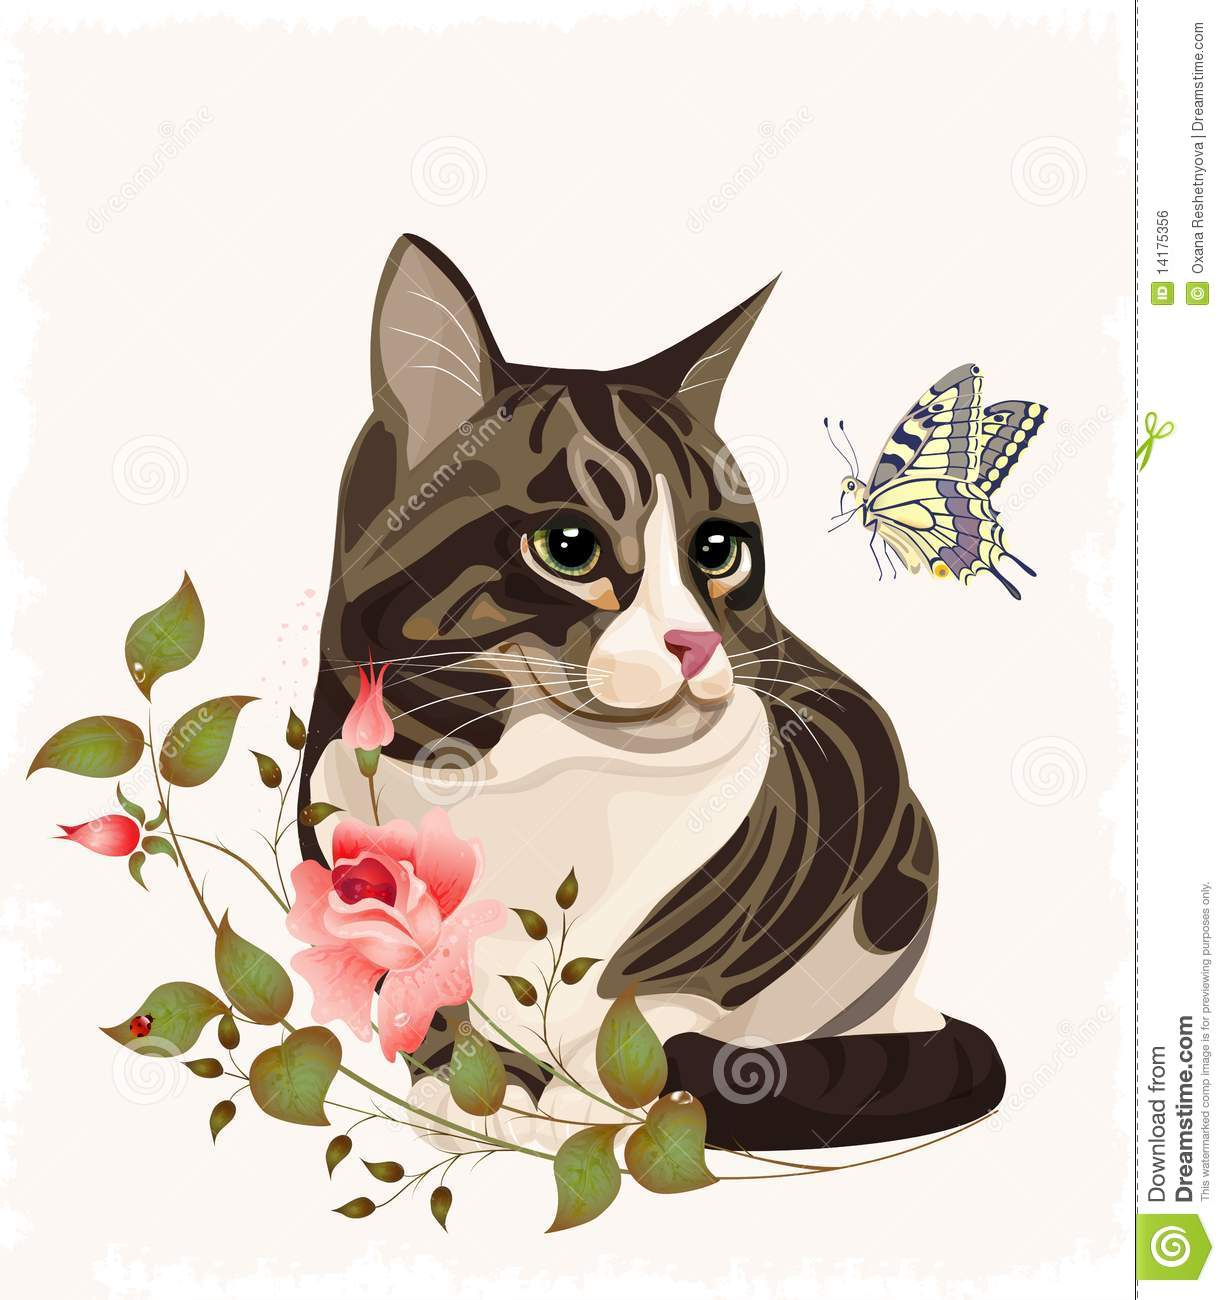 cat and butterfly royalty free stock image image 14175356